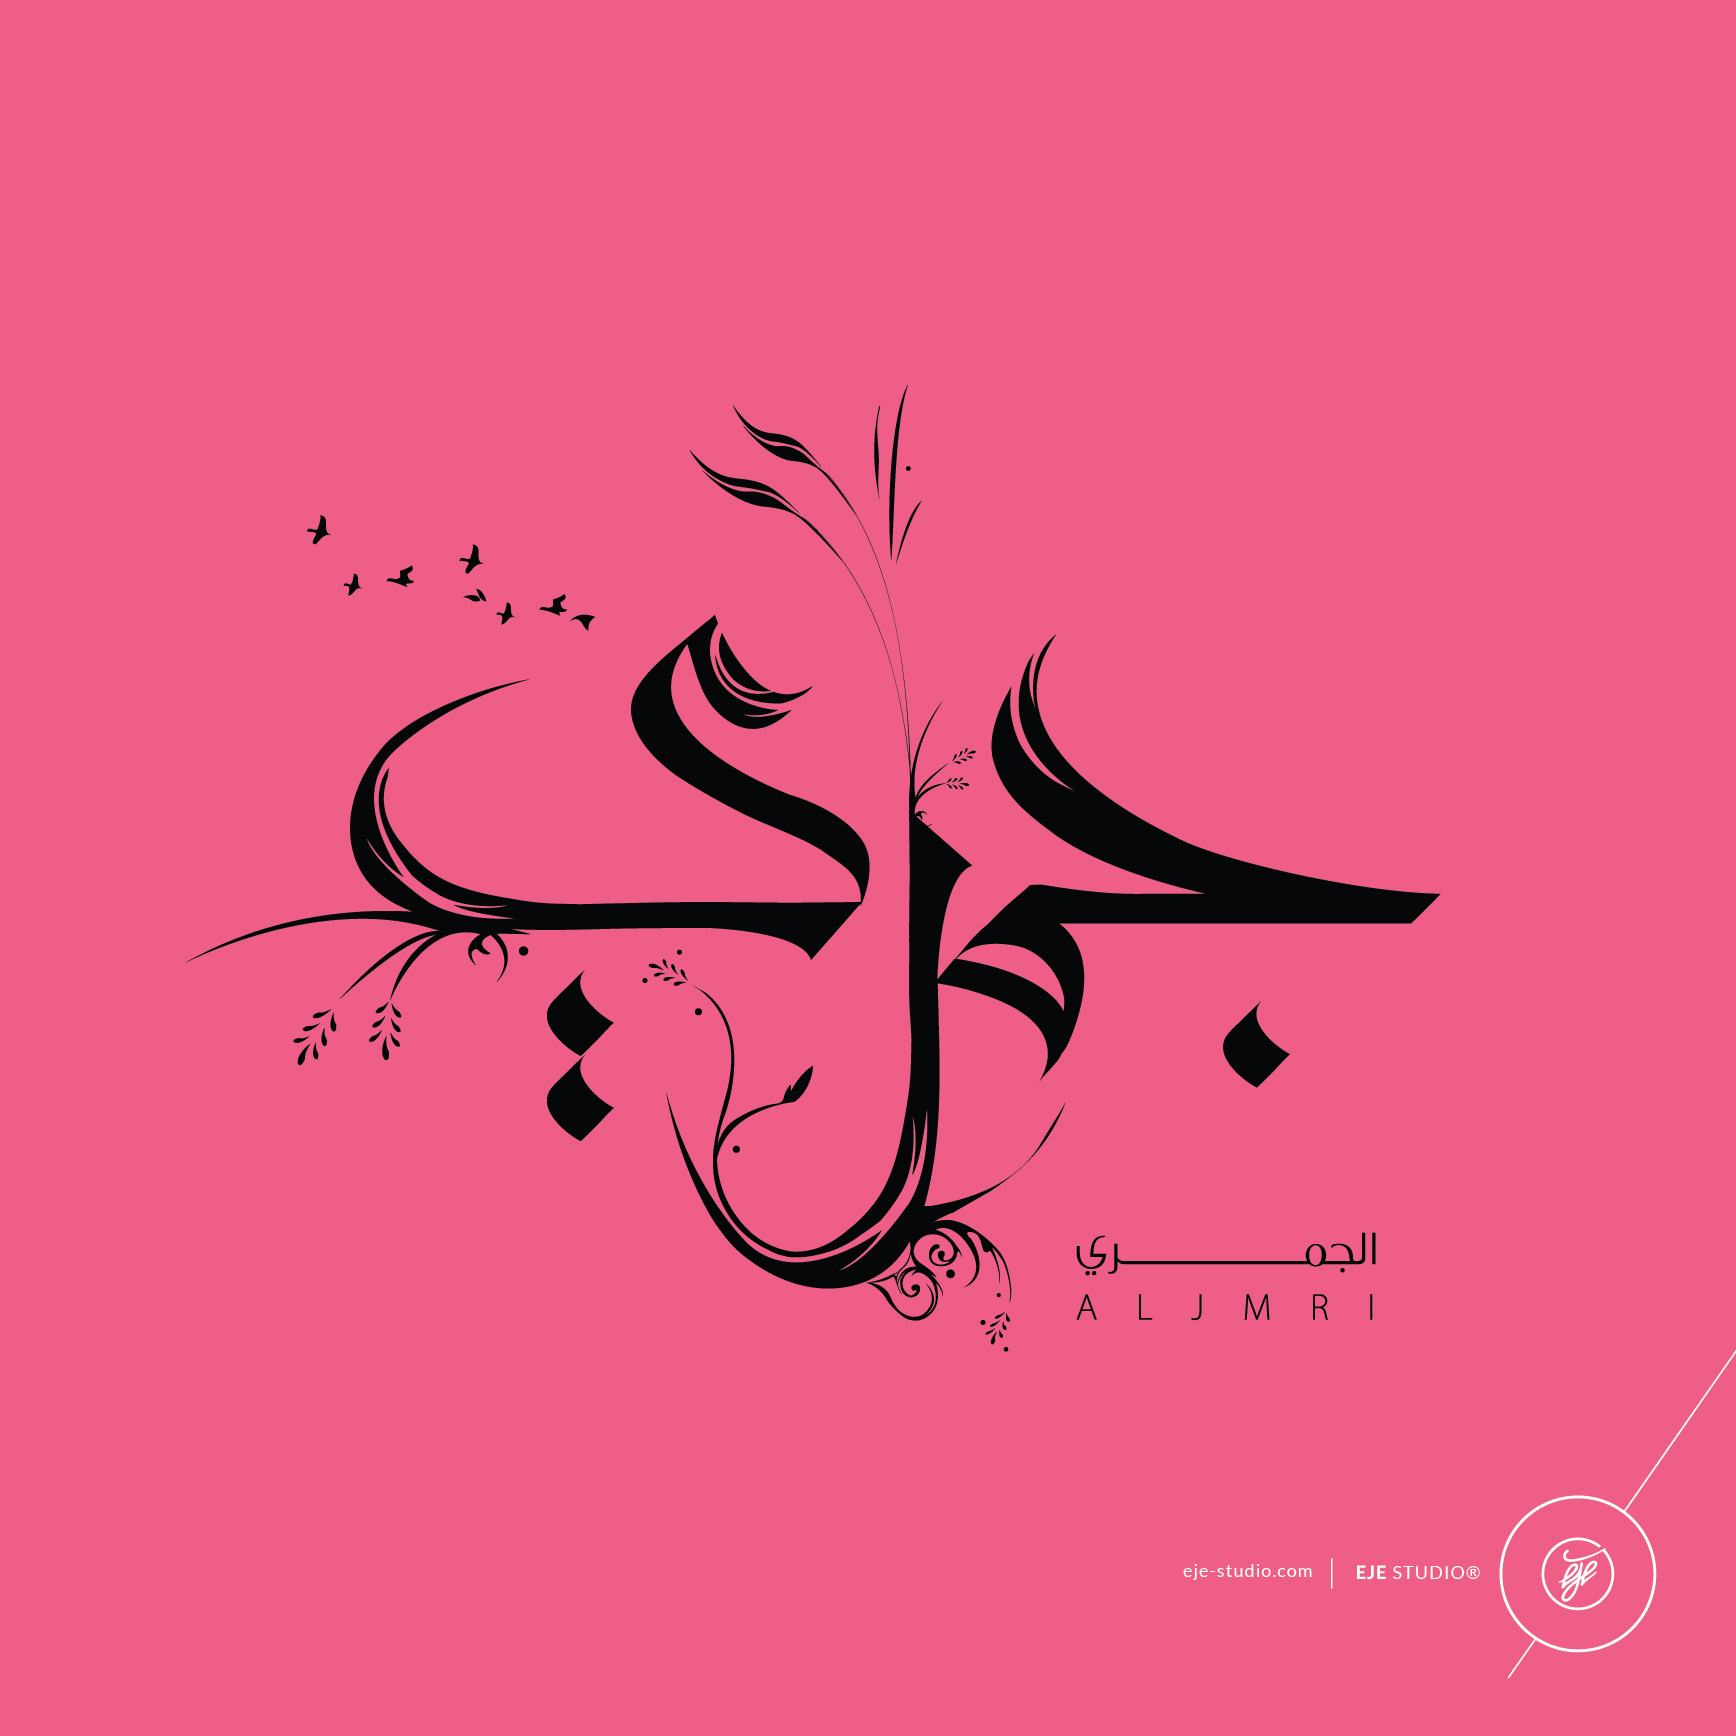 Modern Arabic Calligraphy By Eje Studio 38 By One Bh On